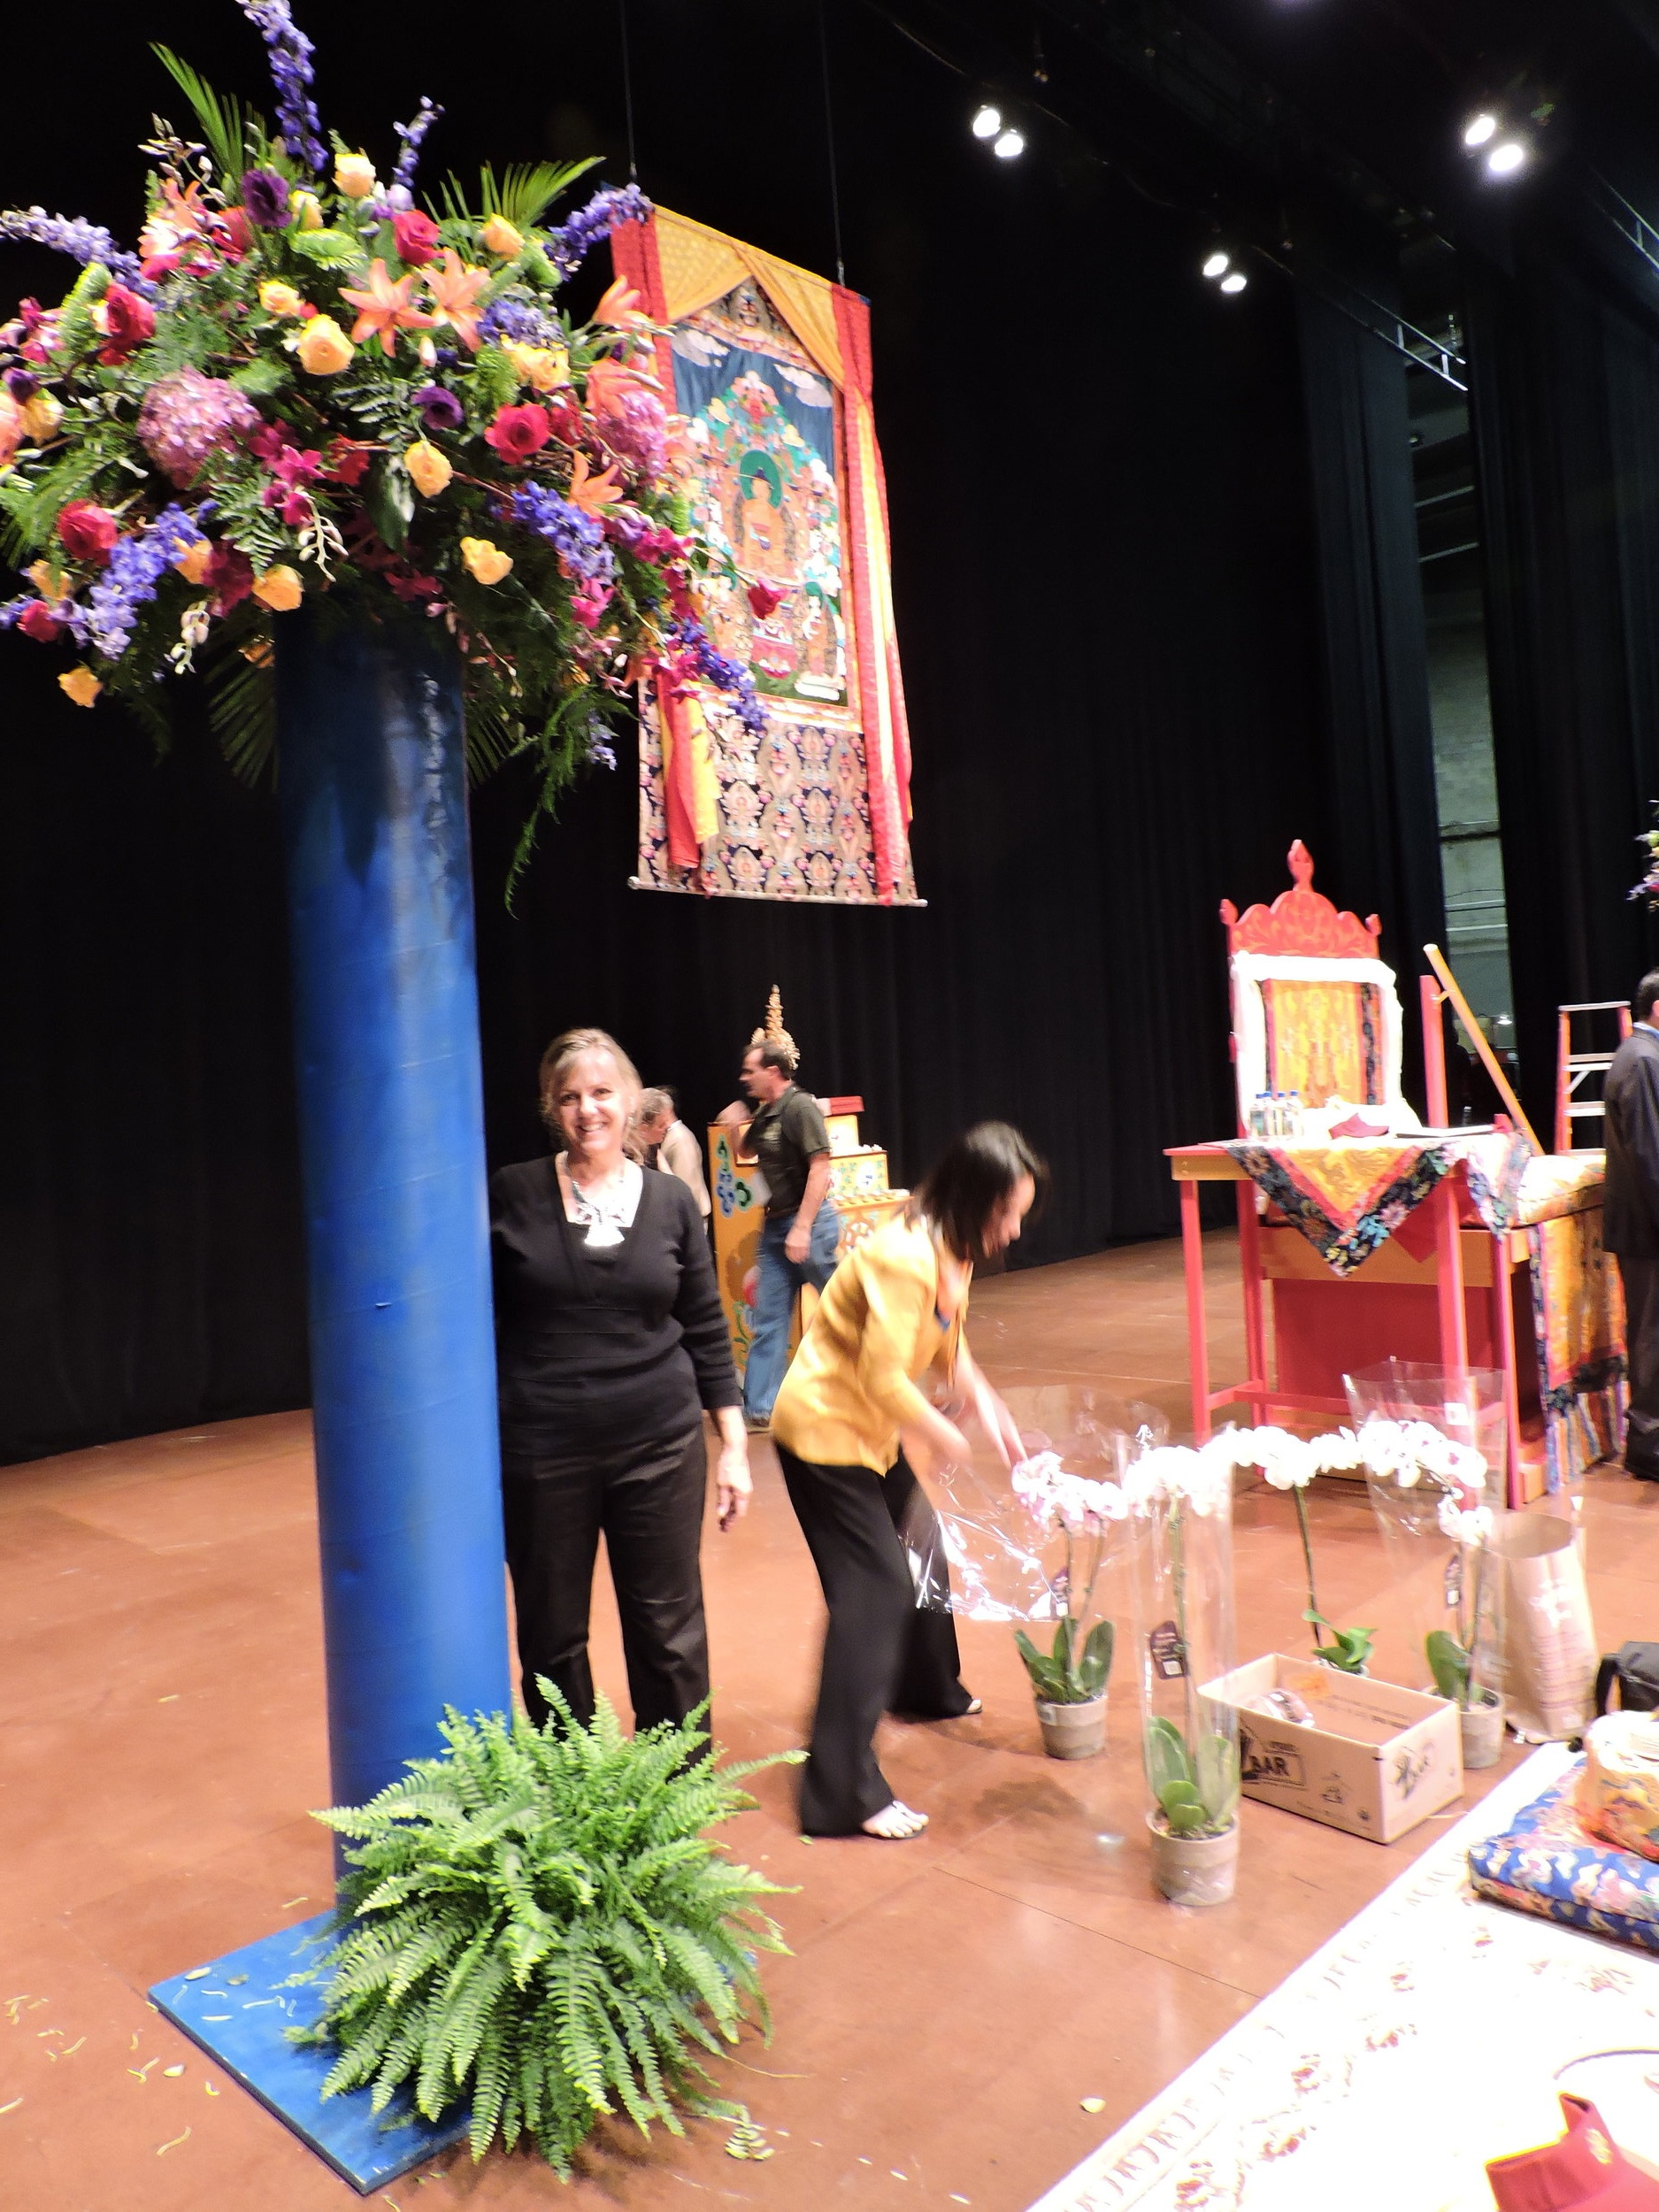 On the Wang Center Stage - Prep day - Flowers needed to look appropriate to monks on the stage as well as to guests in the third balcony.